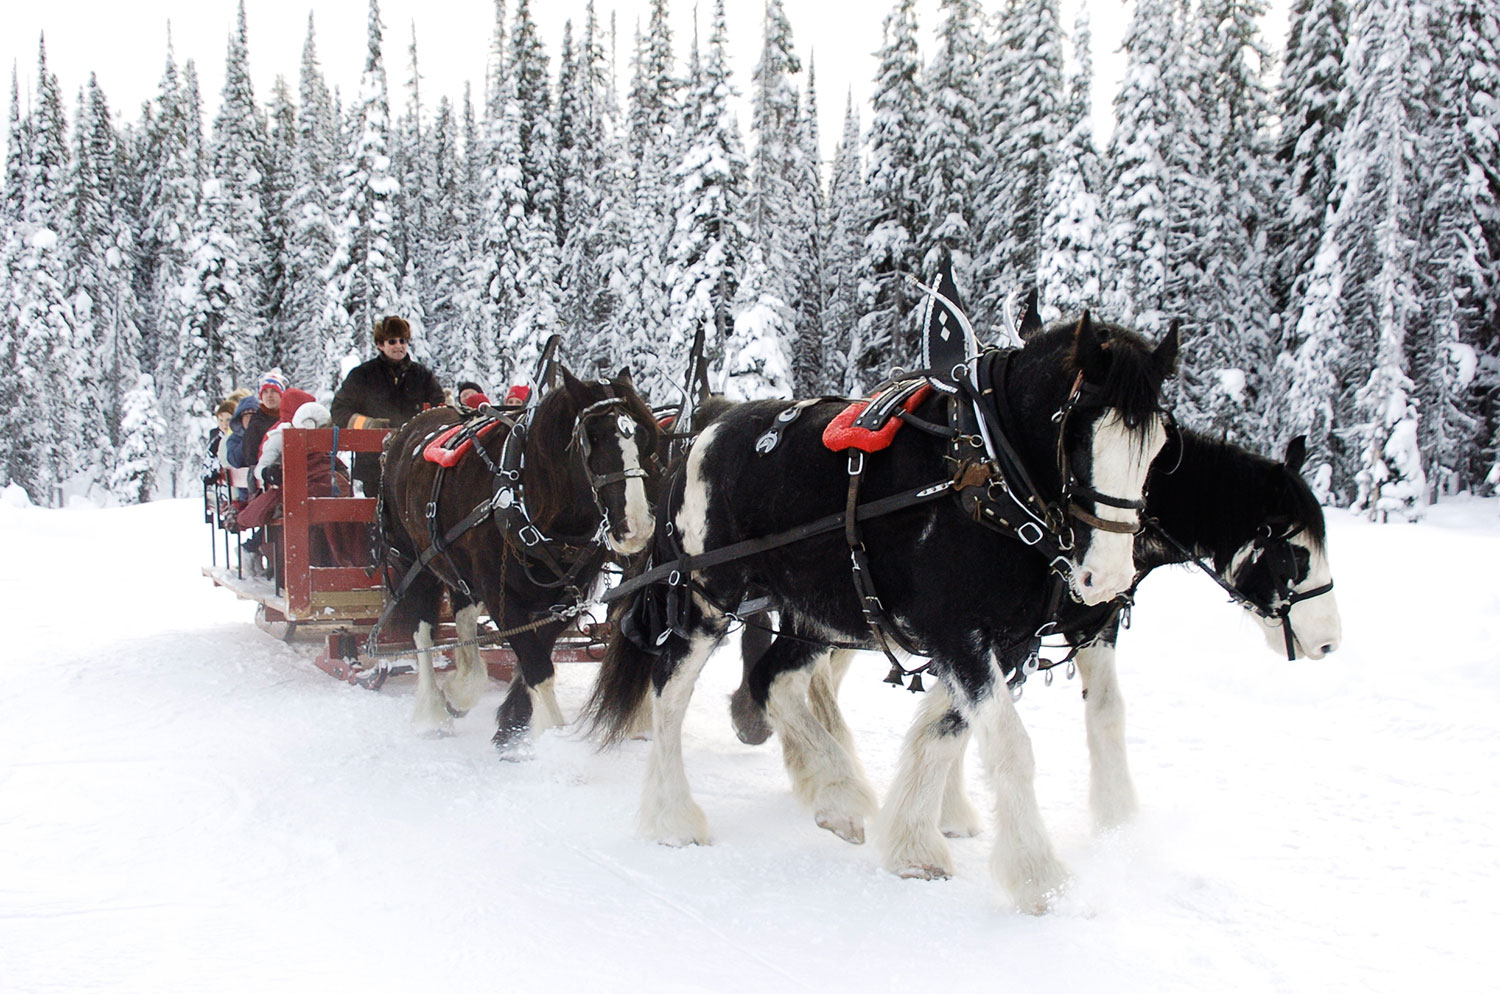 https://i1.wp.com/wp.stu.ca/wellness/wp-content/uploads/sites/17/2014/11/Horse-Sleigh-Rides.jpg